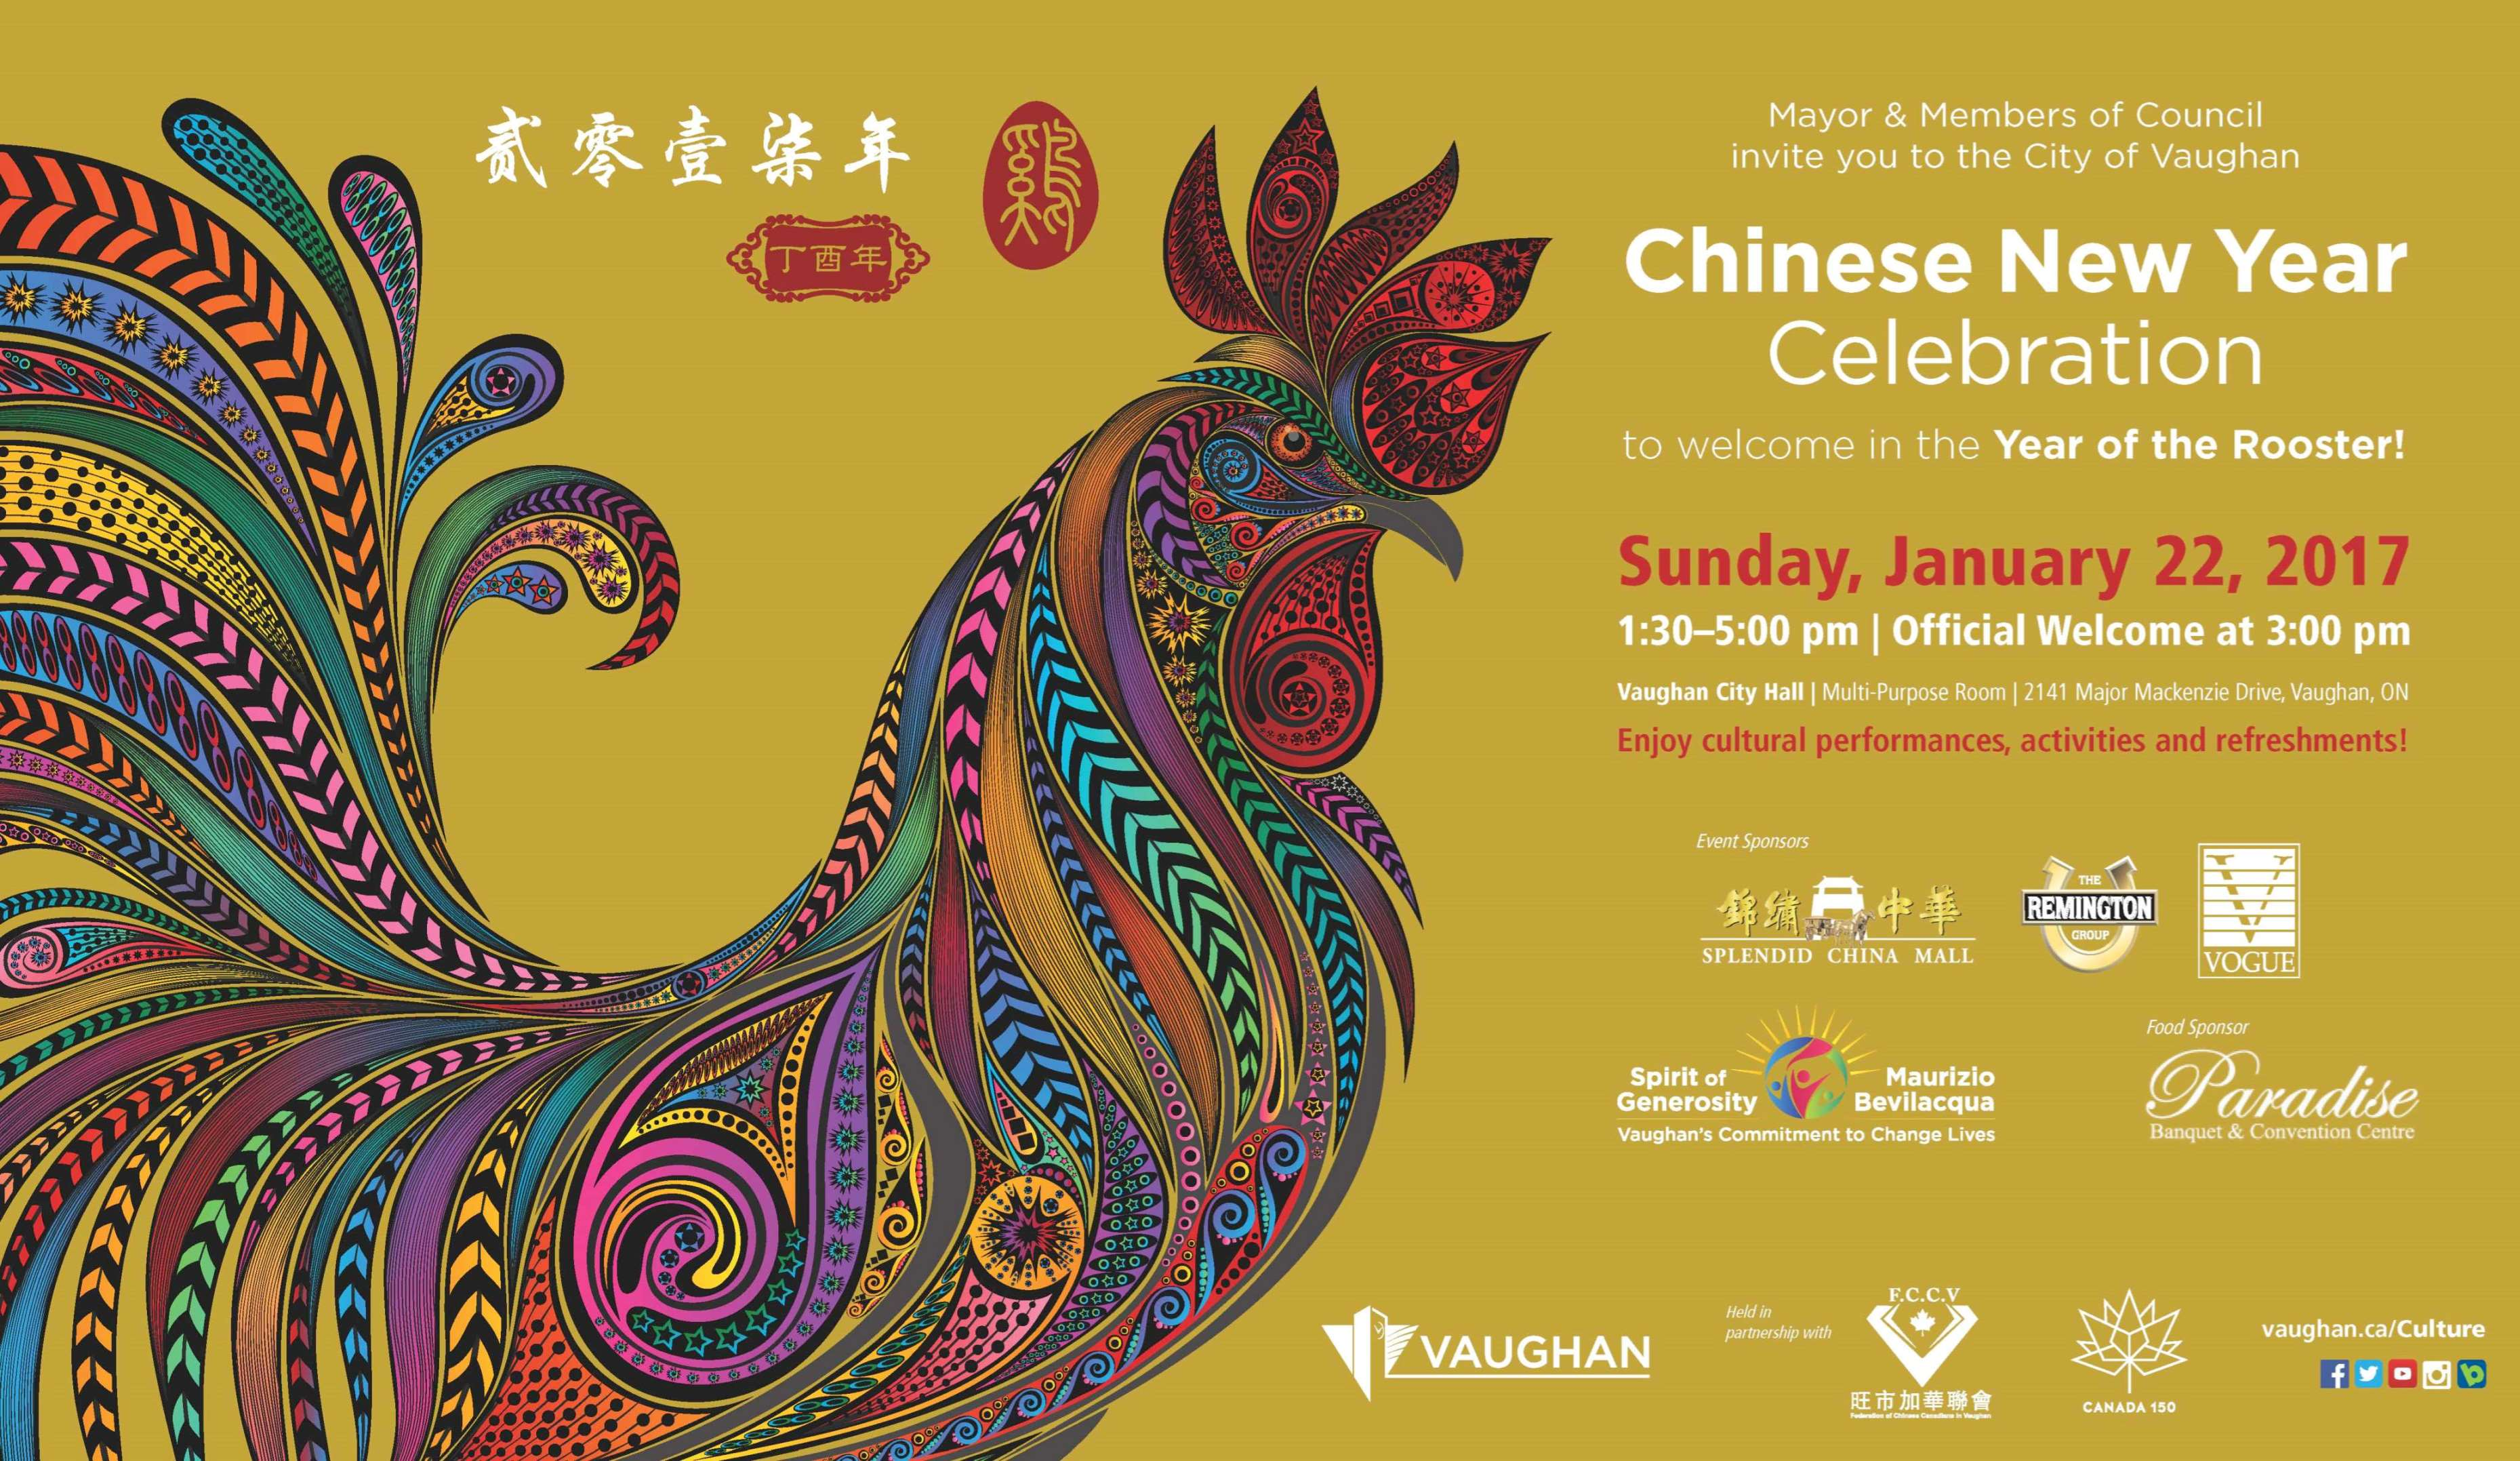 Vaughan welcomes the year of the rooster sandra yeung racco the chinese new year is a time to reflect on our past accomplishments and look forward to the year ahead as family and friends gather to celebrate old and biocorpaavc